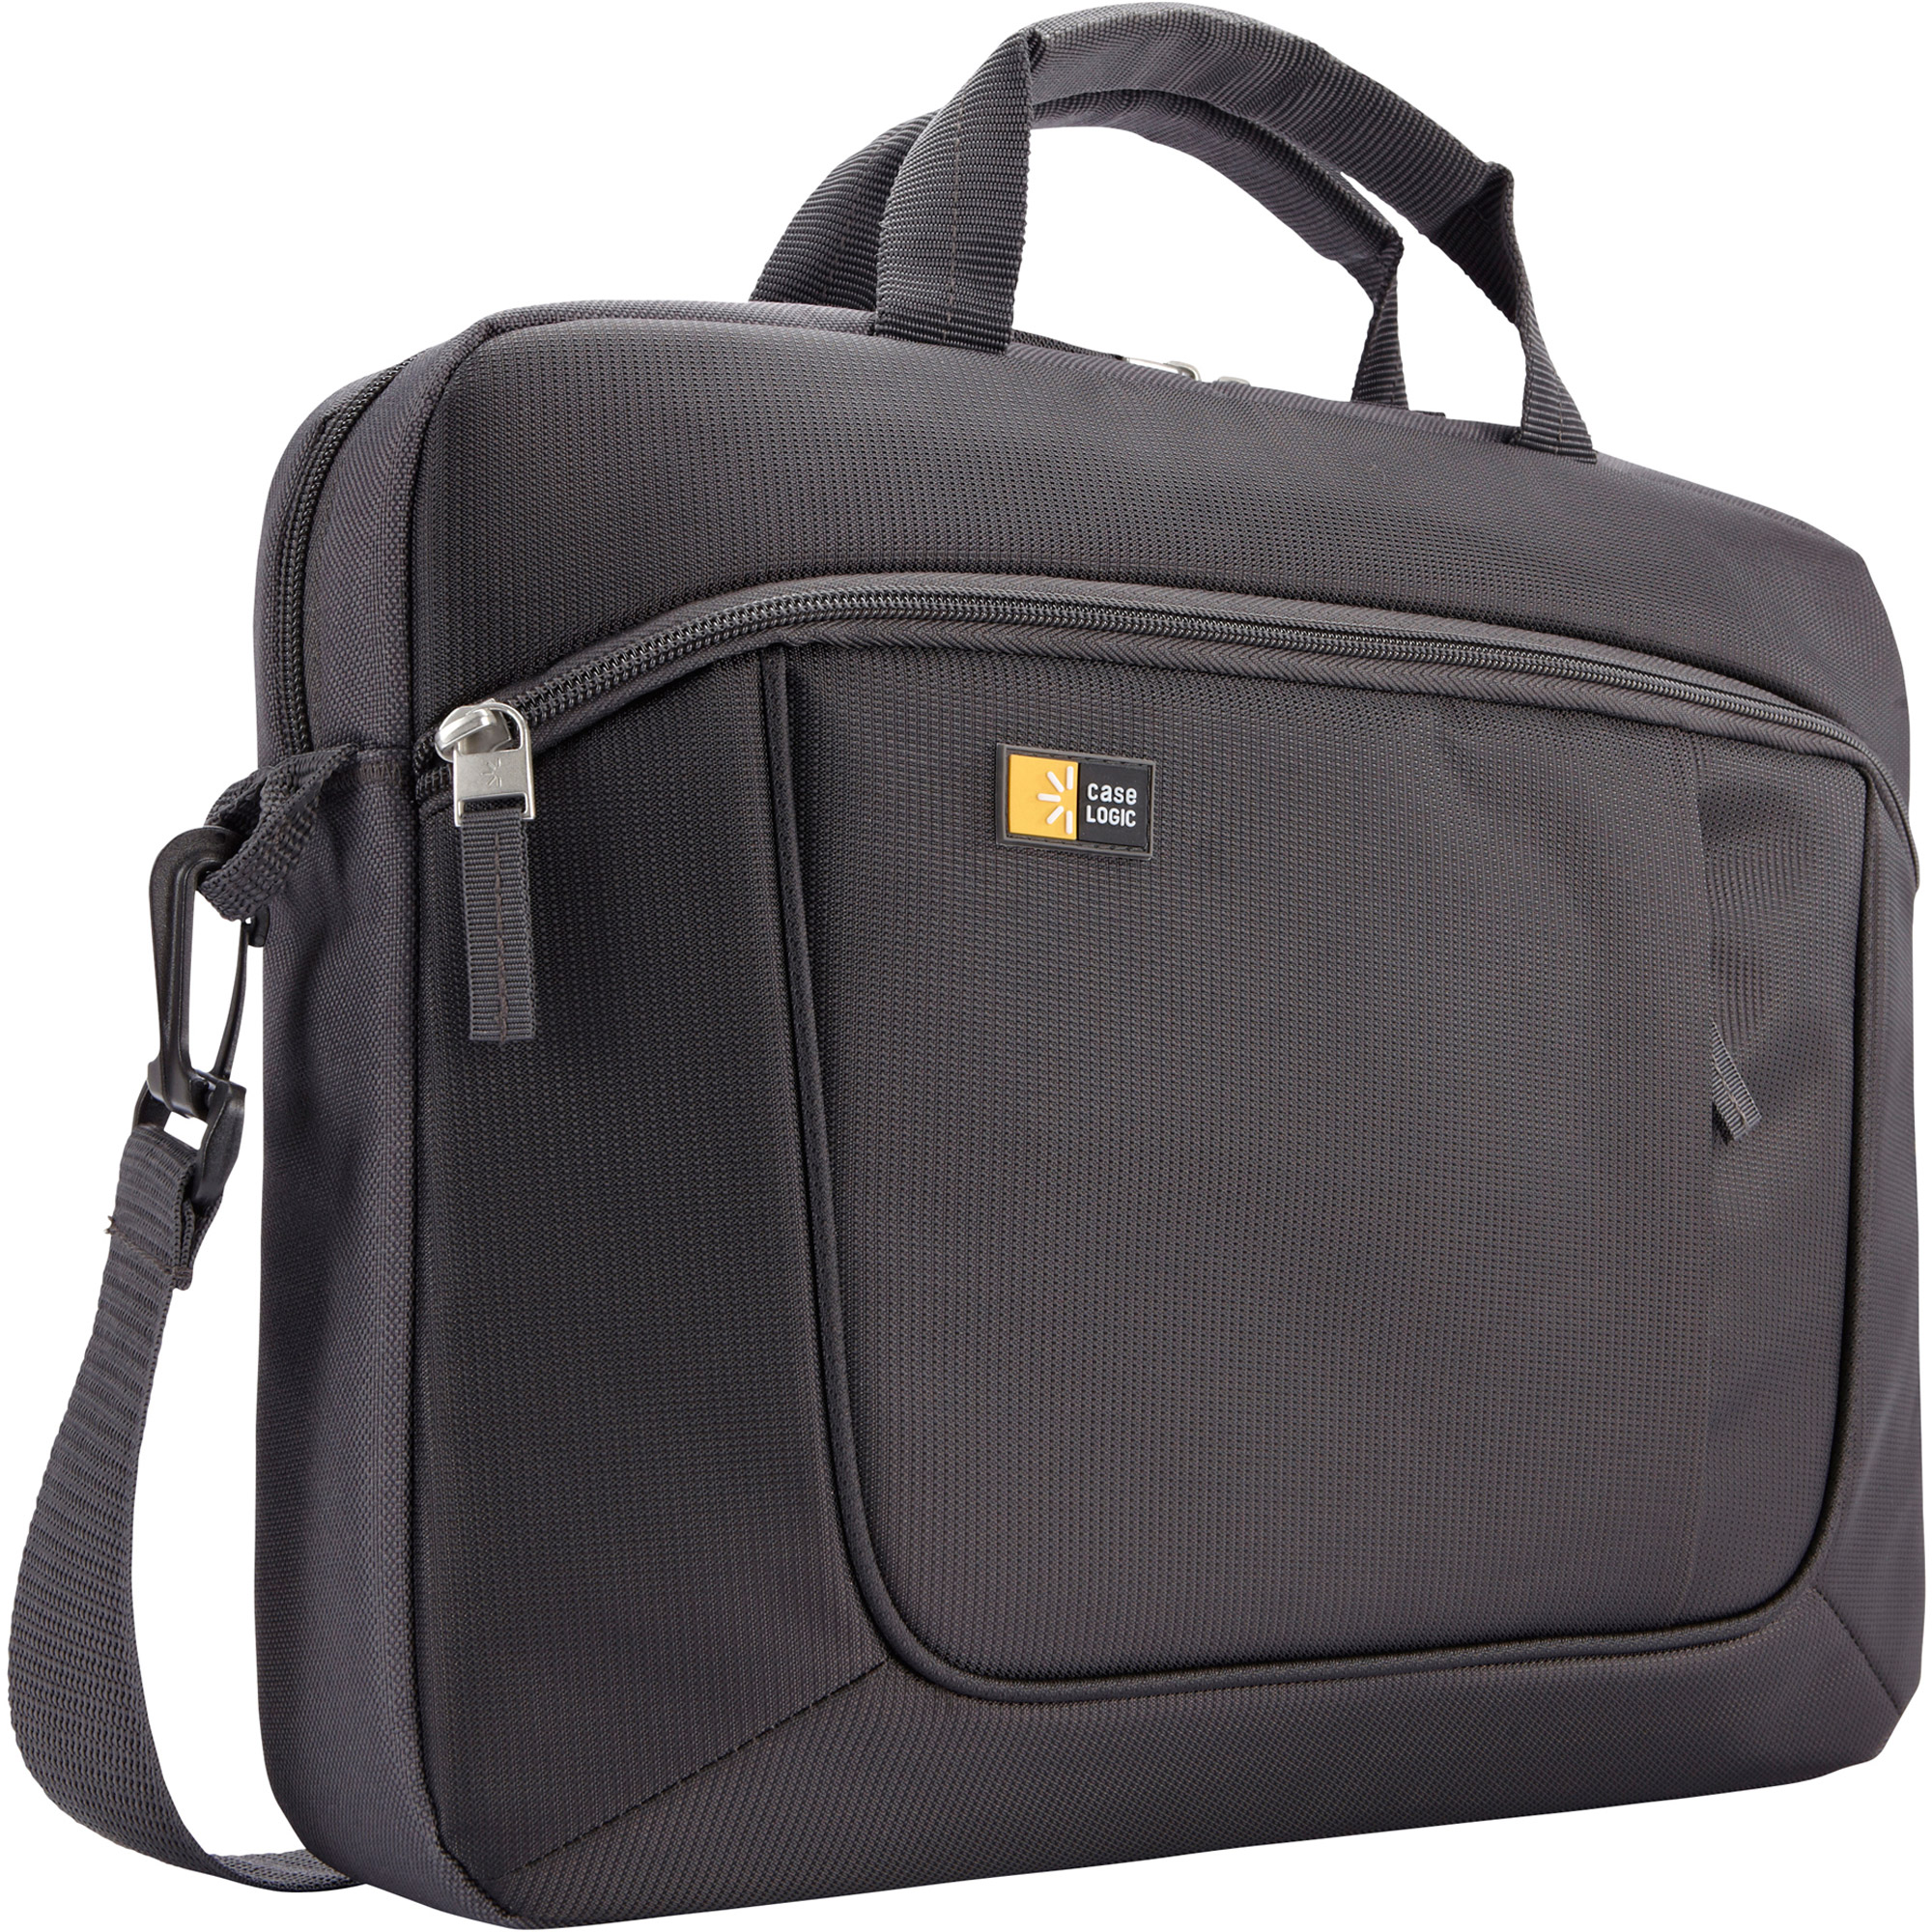 "Case Logic Slimcase Attache for up to 14.1"" Ultrabooks"